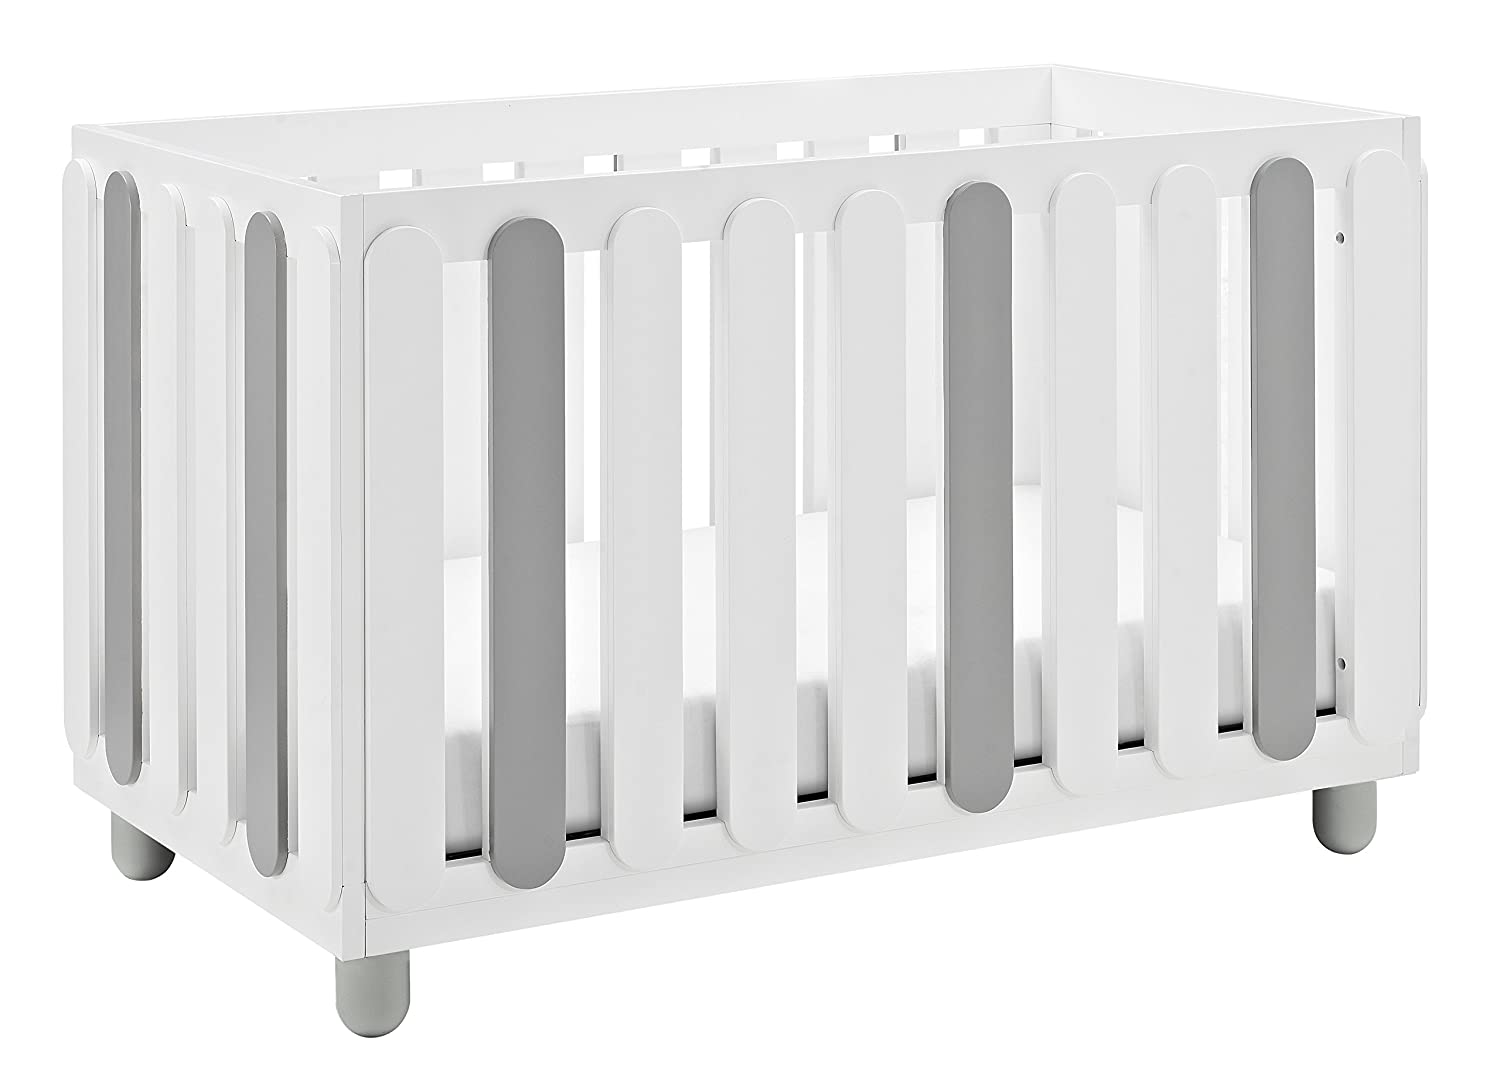 Some Assembly Required Three Position Adjustable Height Mattress Storkcraft Sienna 3-in-1 Convertible Crib Easily Converts to Toddler Bed Day Bed or Full Bed White//Natural